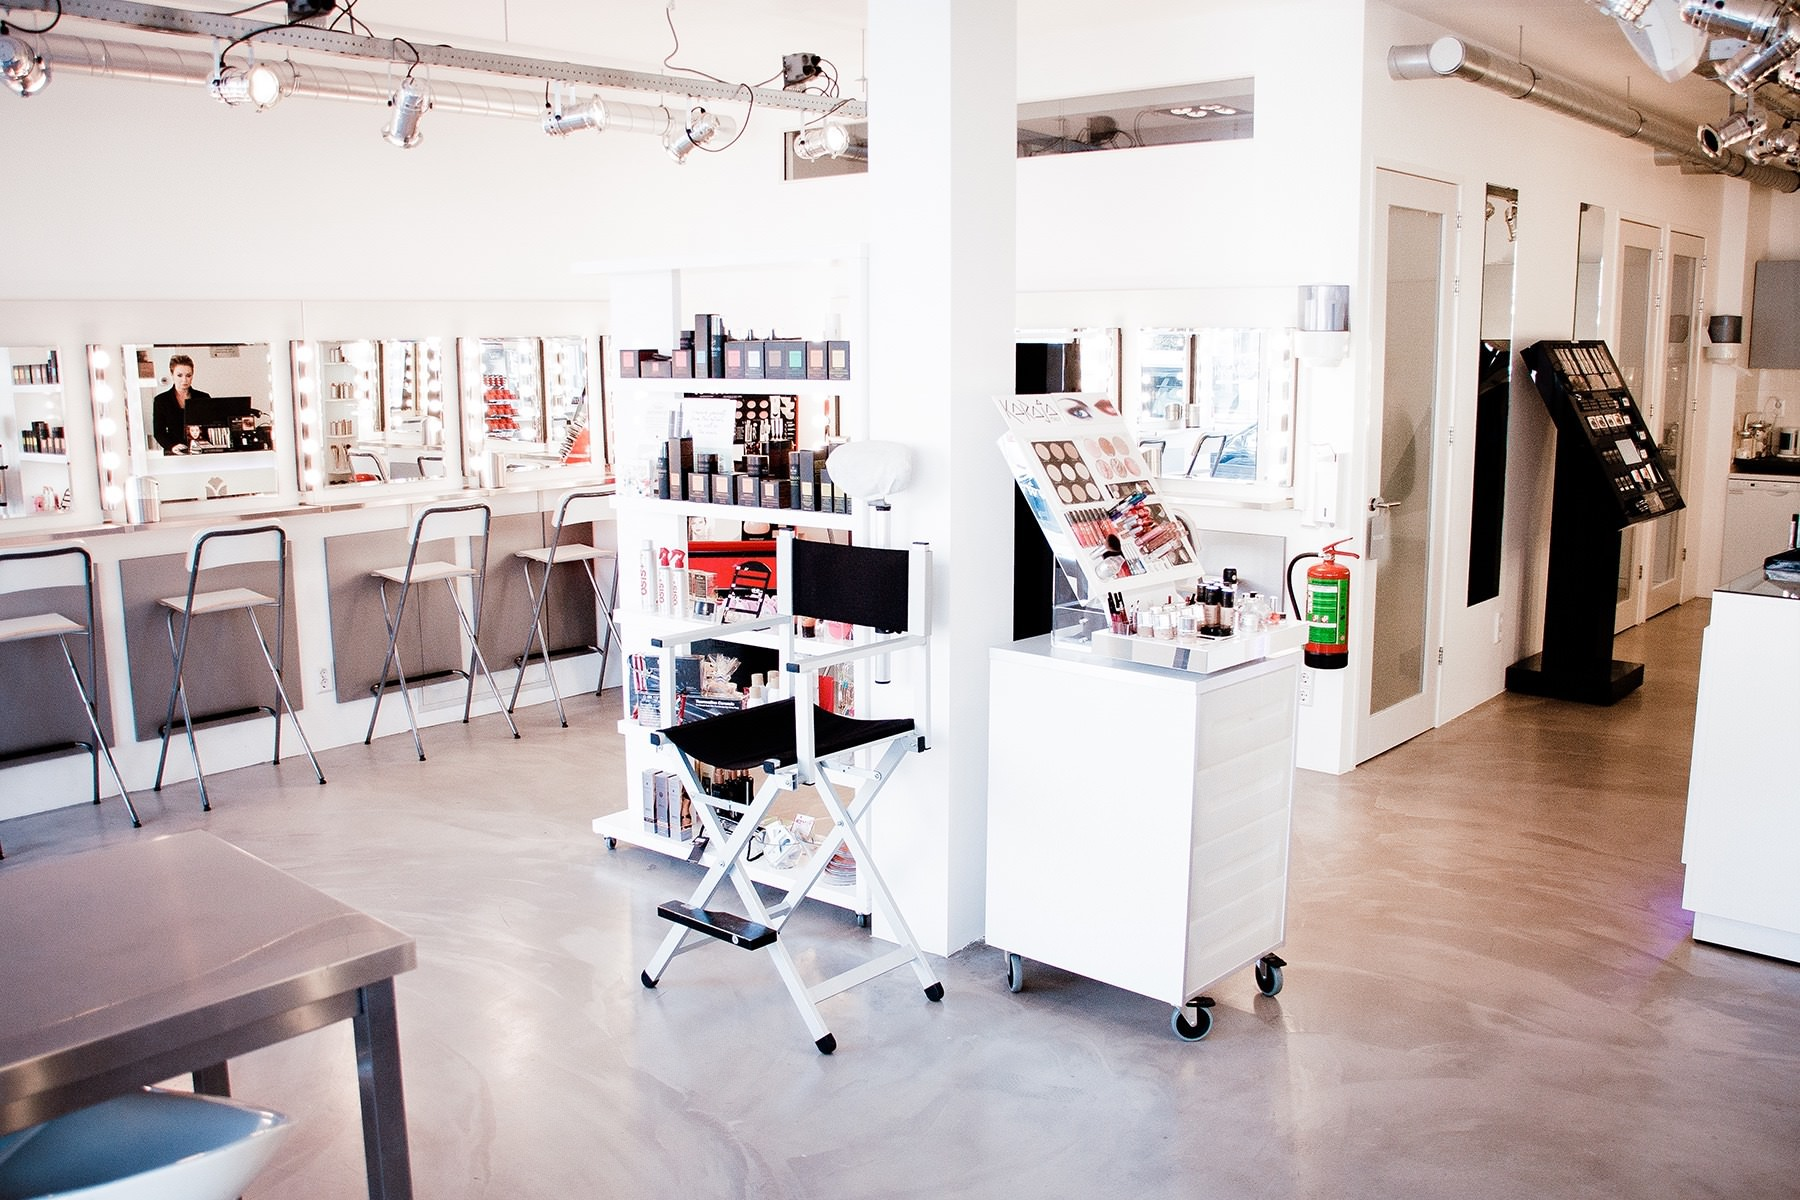 Flavour Visagie Beauty Salon in Rotterdam